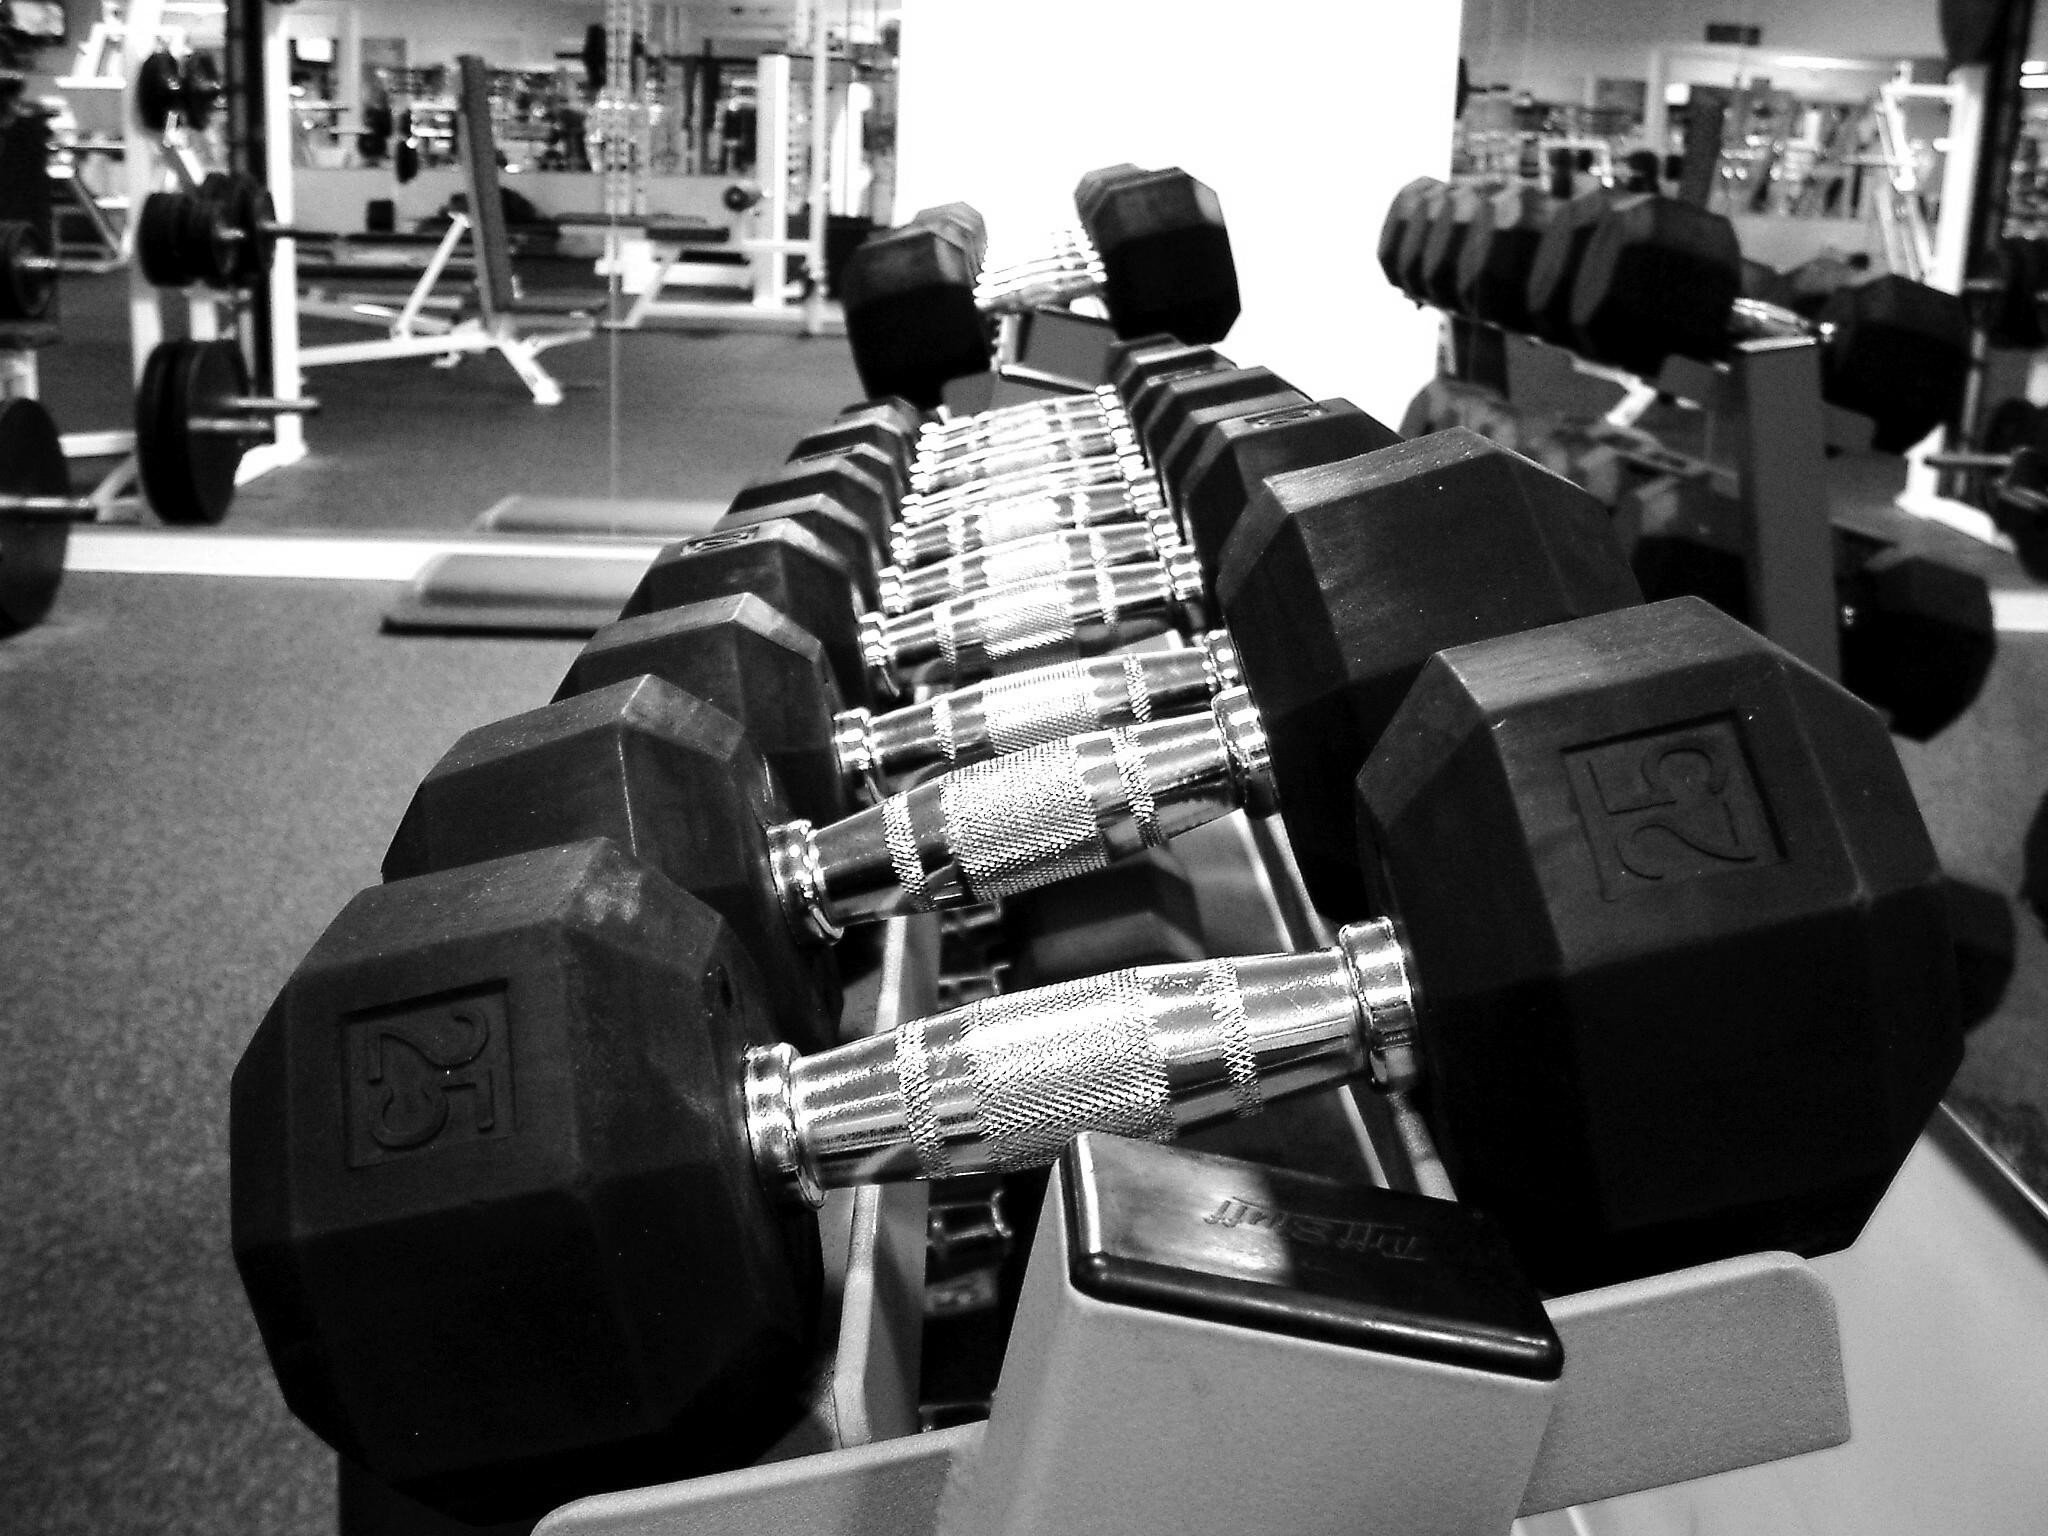 Gym Wallpaper Hd 65 Images